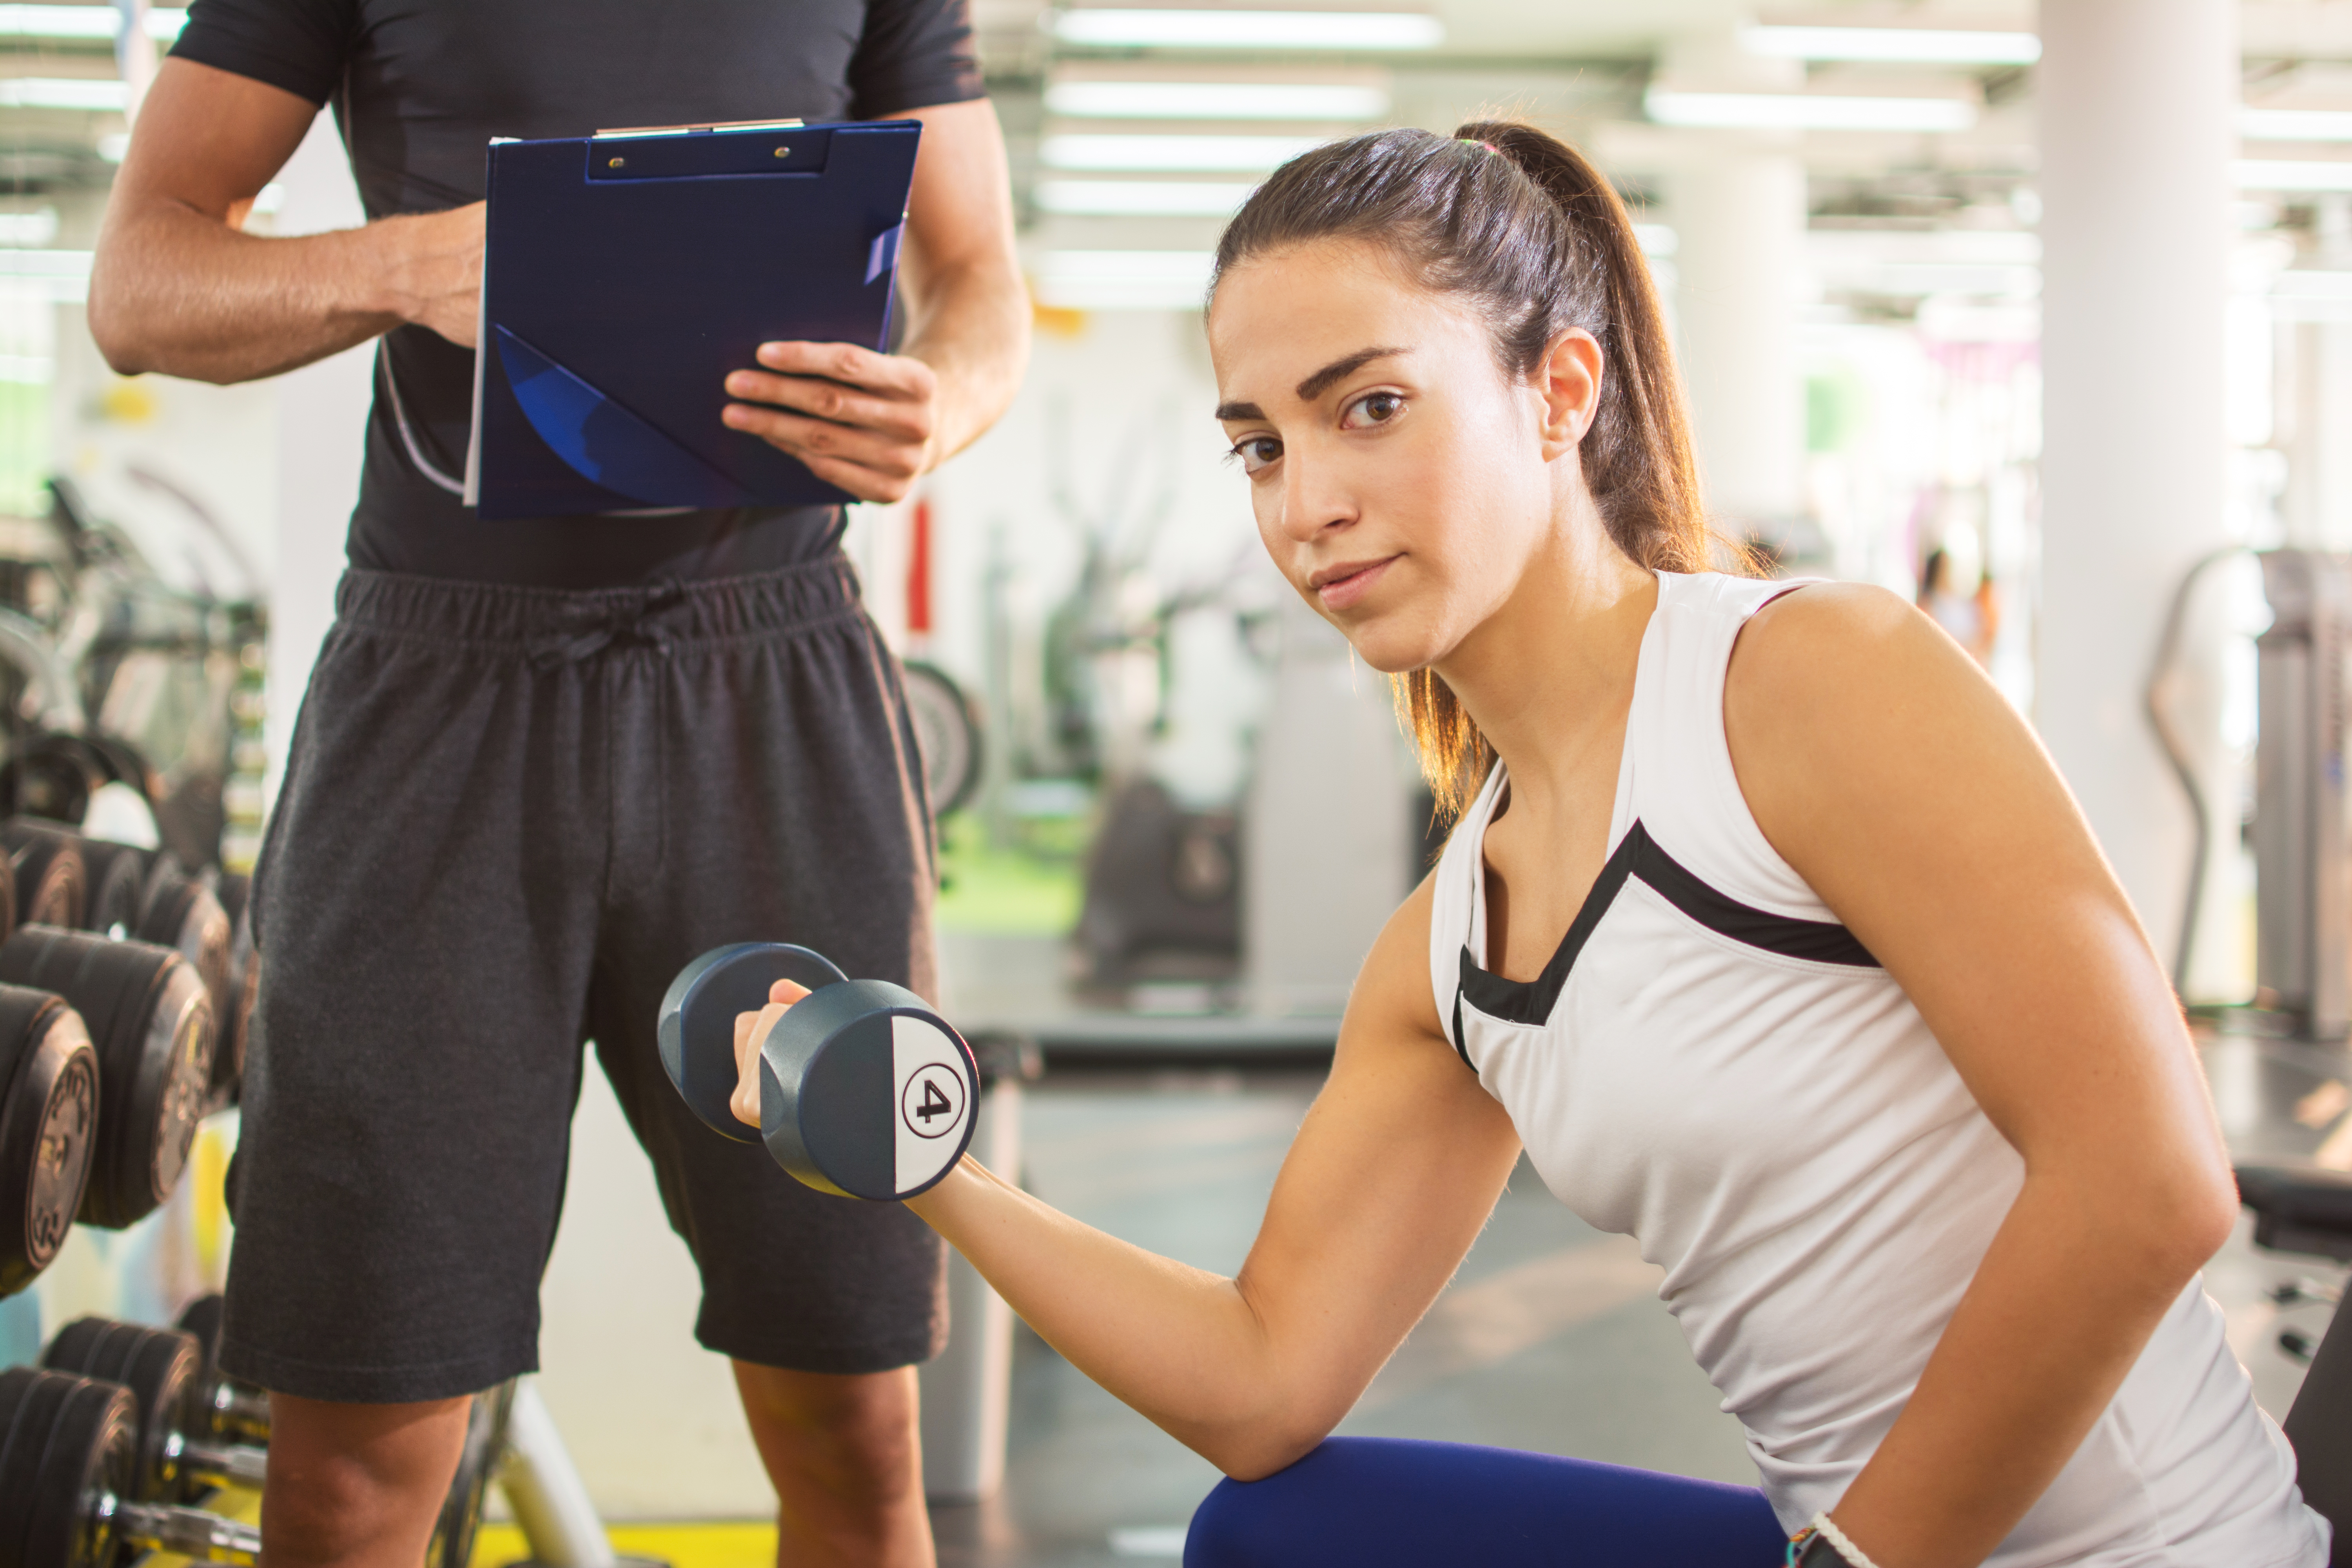 About Issa Personal Training Certifications Livestrong